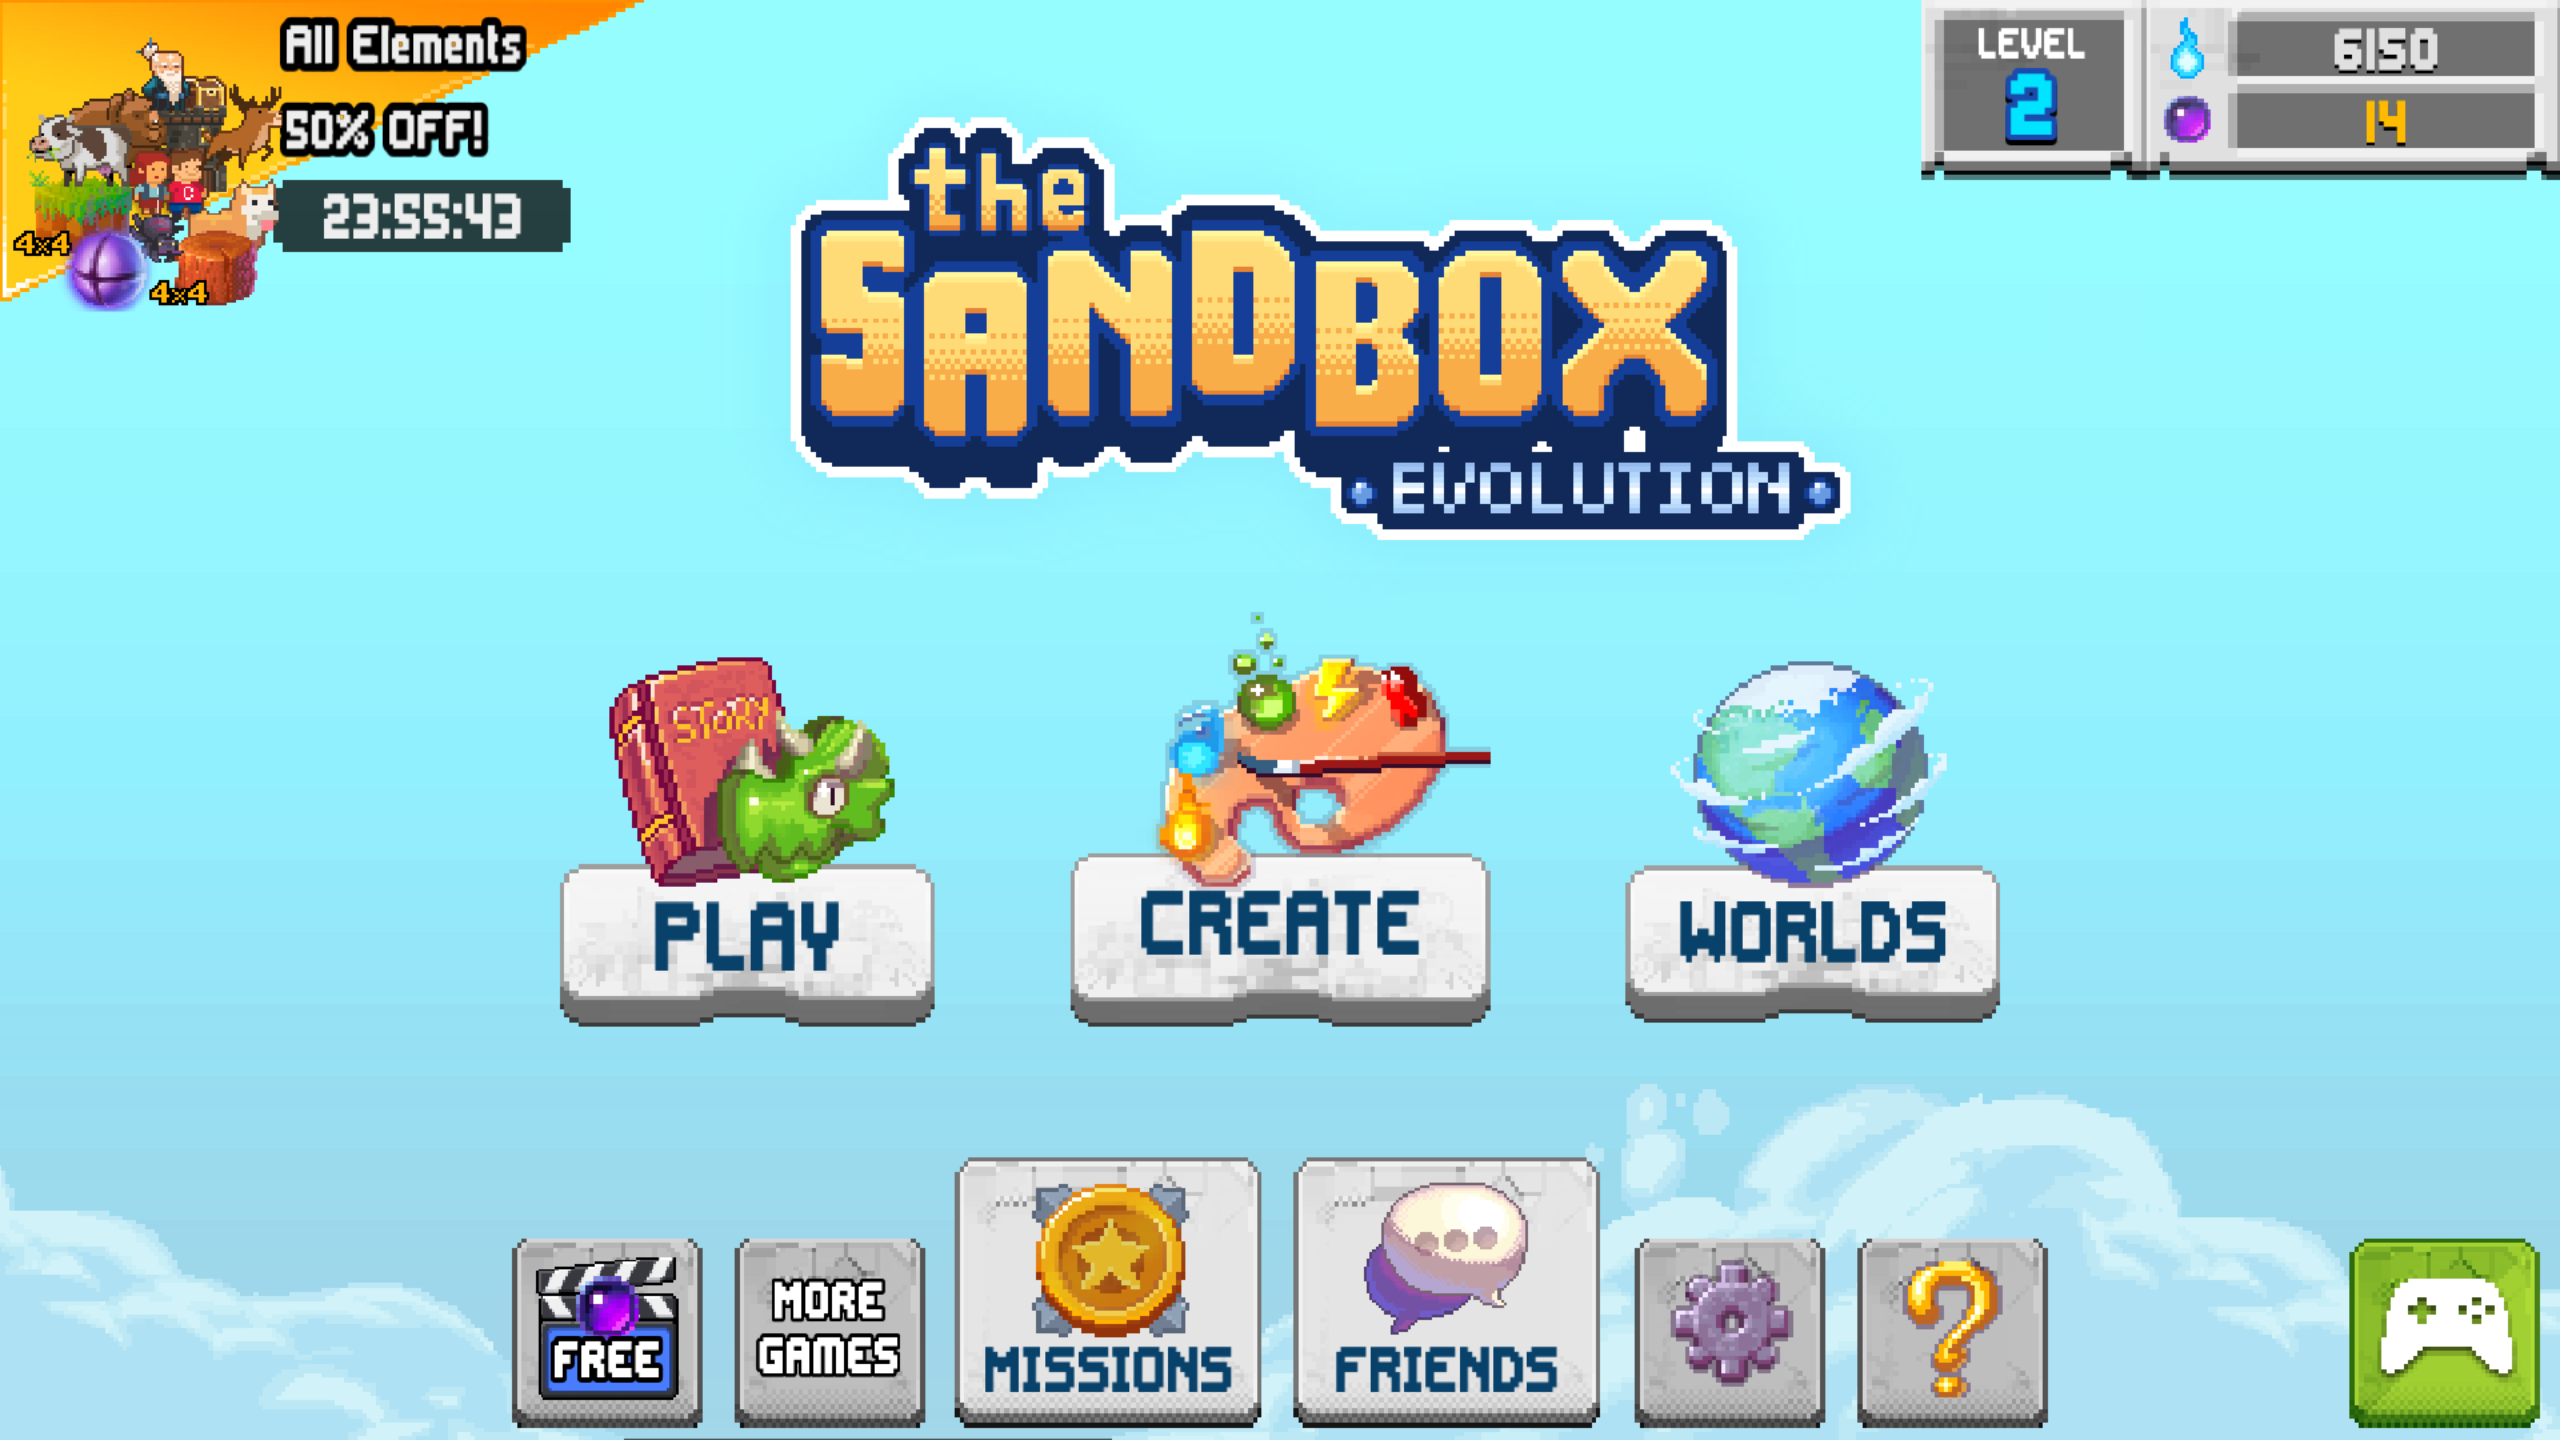 The Sandbox Evolution-5